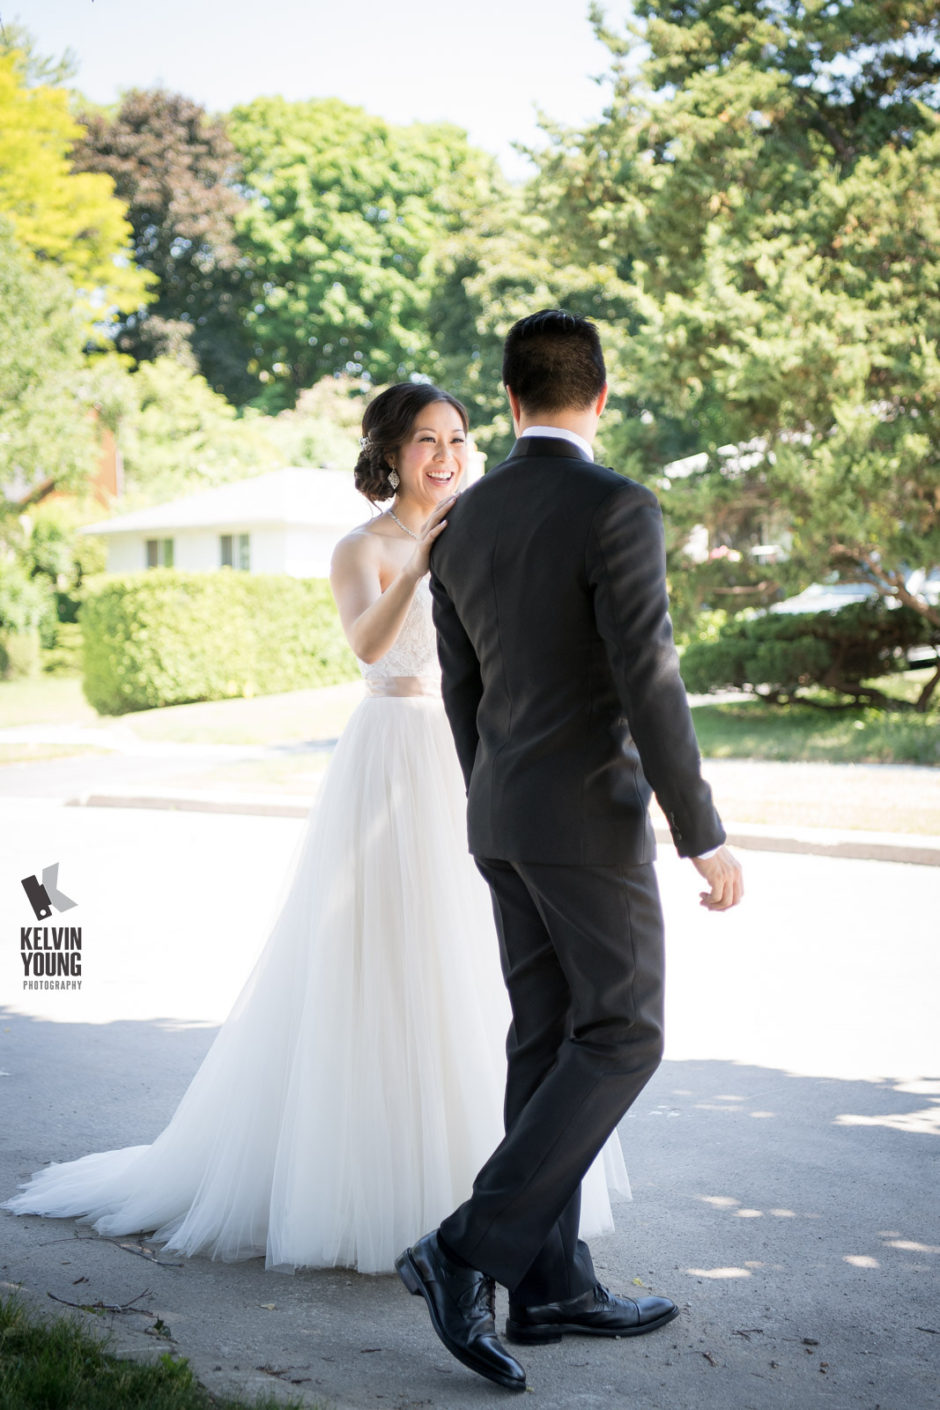 kelvin-young-photography_kim-jason-toronto-wedding_027